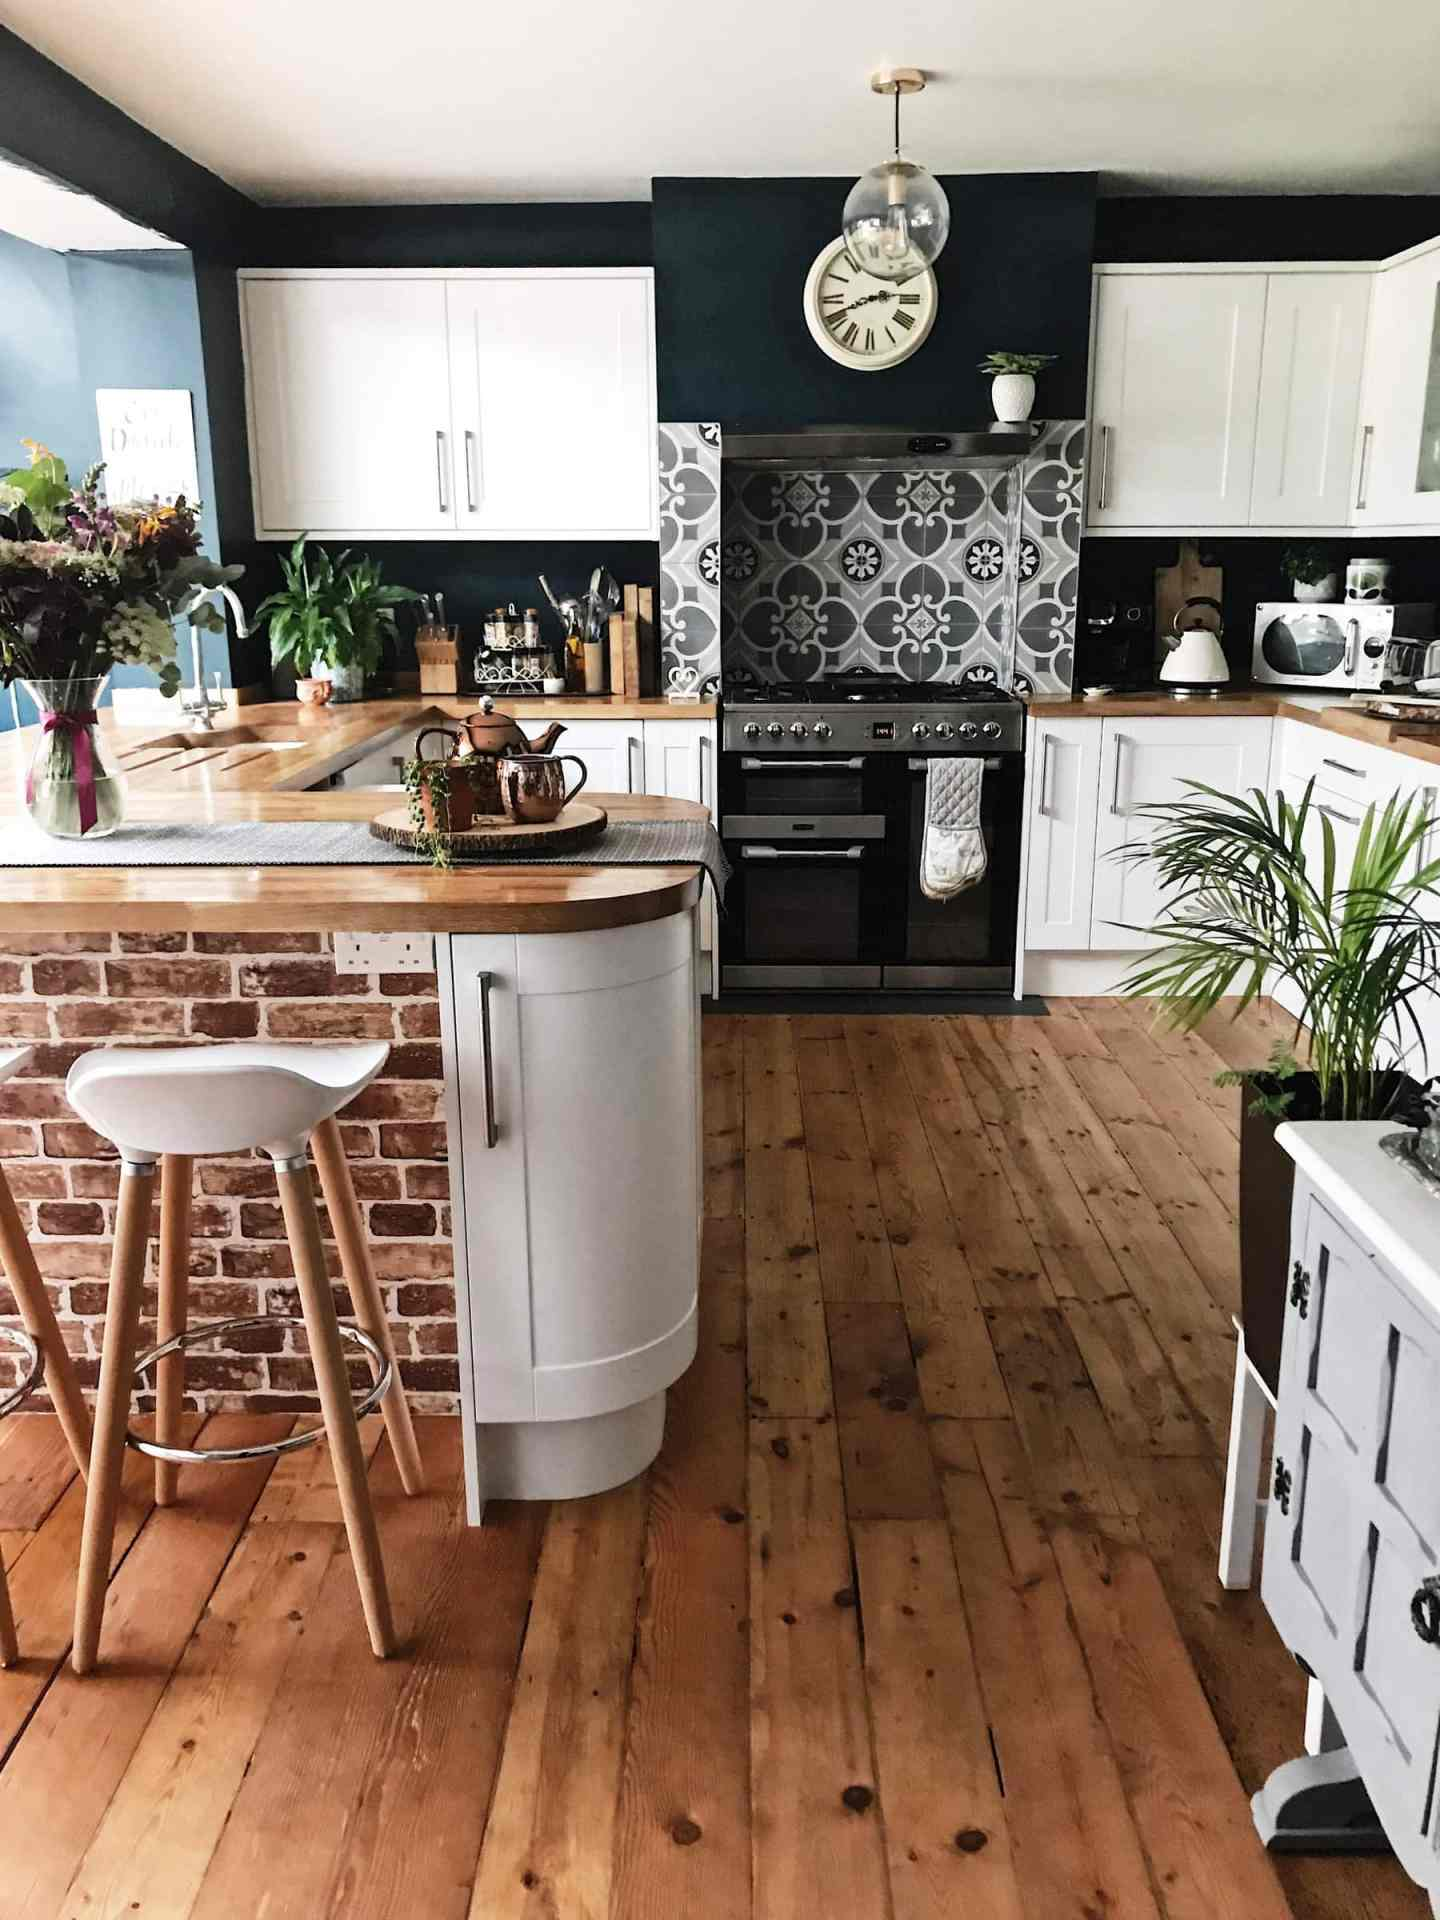 kitchen, kitchen renovation, kitchen project, kitchen decoration, renovation, home project, decorating, painting, painting and decorating, interiors, interior design, home decor, decor